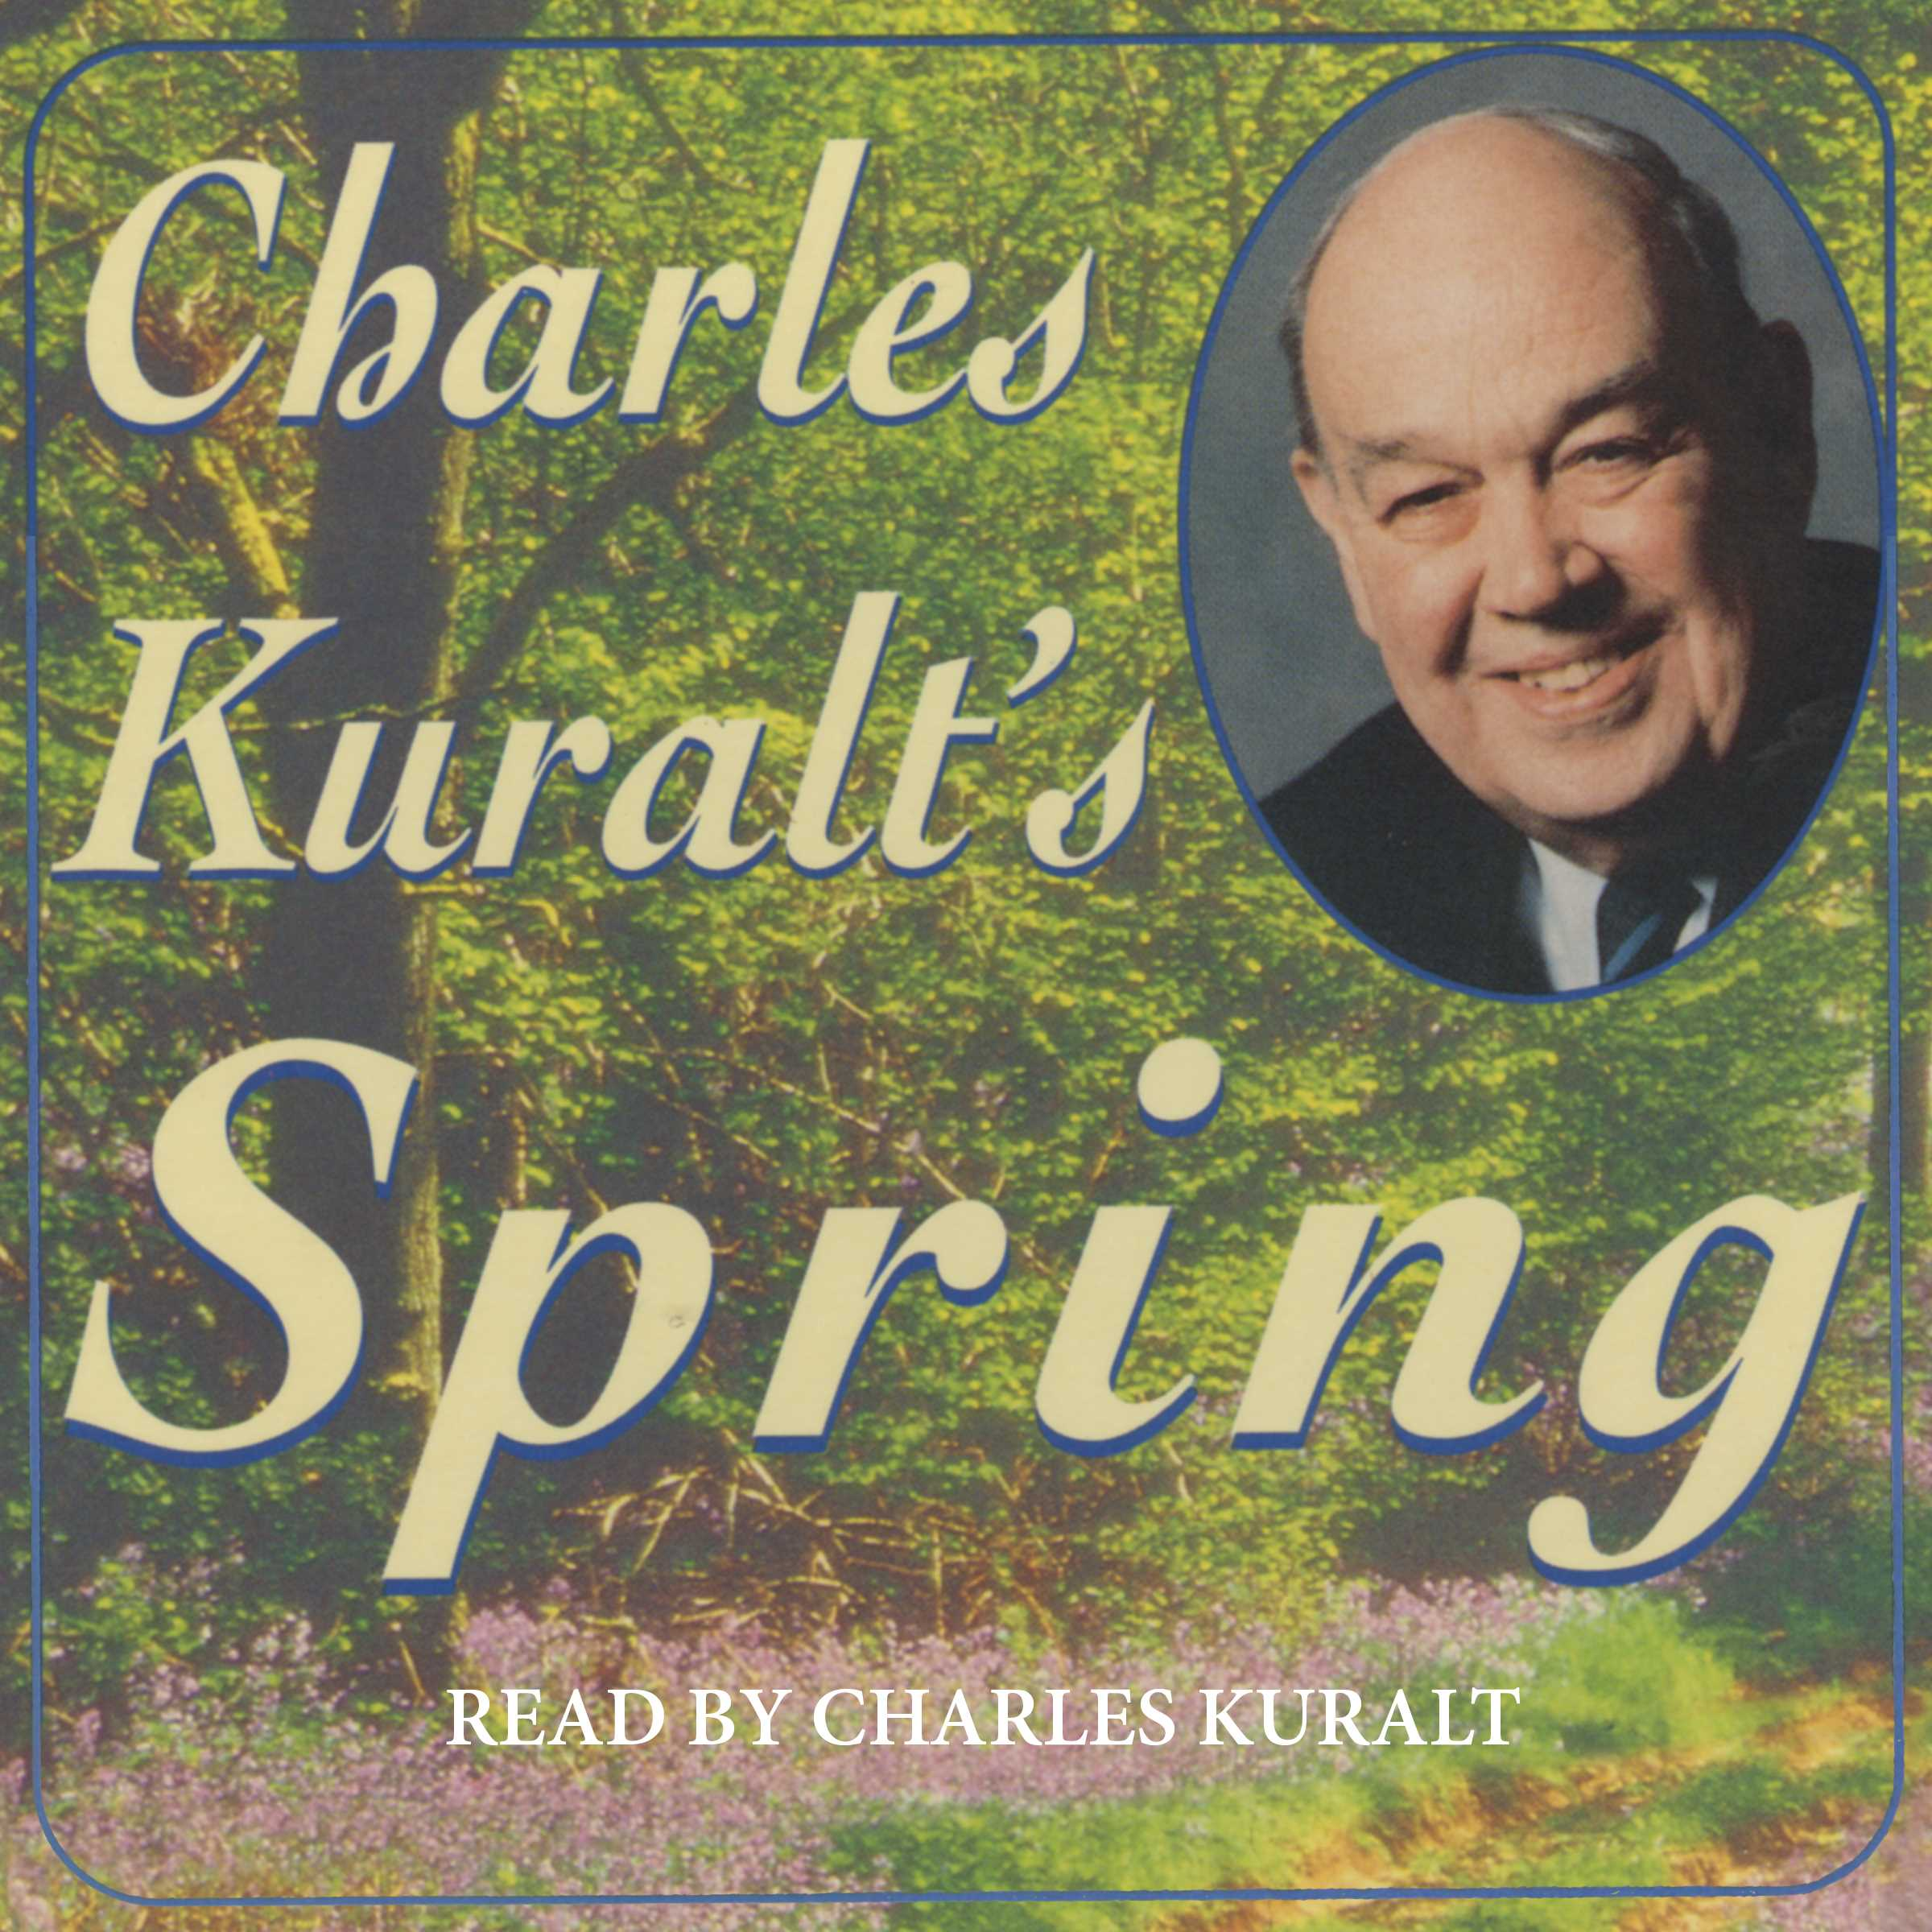 charles kuralt life essays The charles kuralt collection: charles kuralt's america a life on the road 5 copies charles kuralt talked about his book, charles kuralt's america, published by putnam publishing group he reminisced about his favorite places in the us he was formerly a host of sunday morning on cbs.